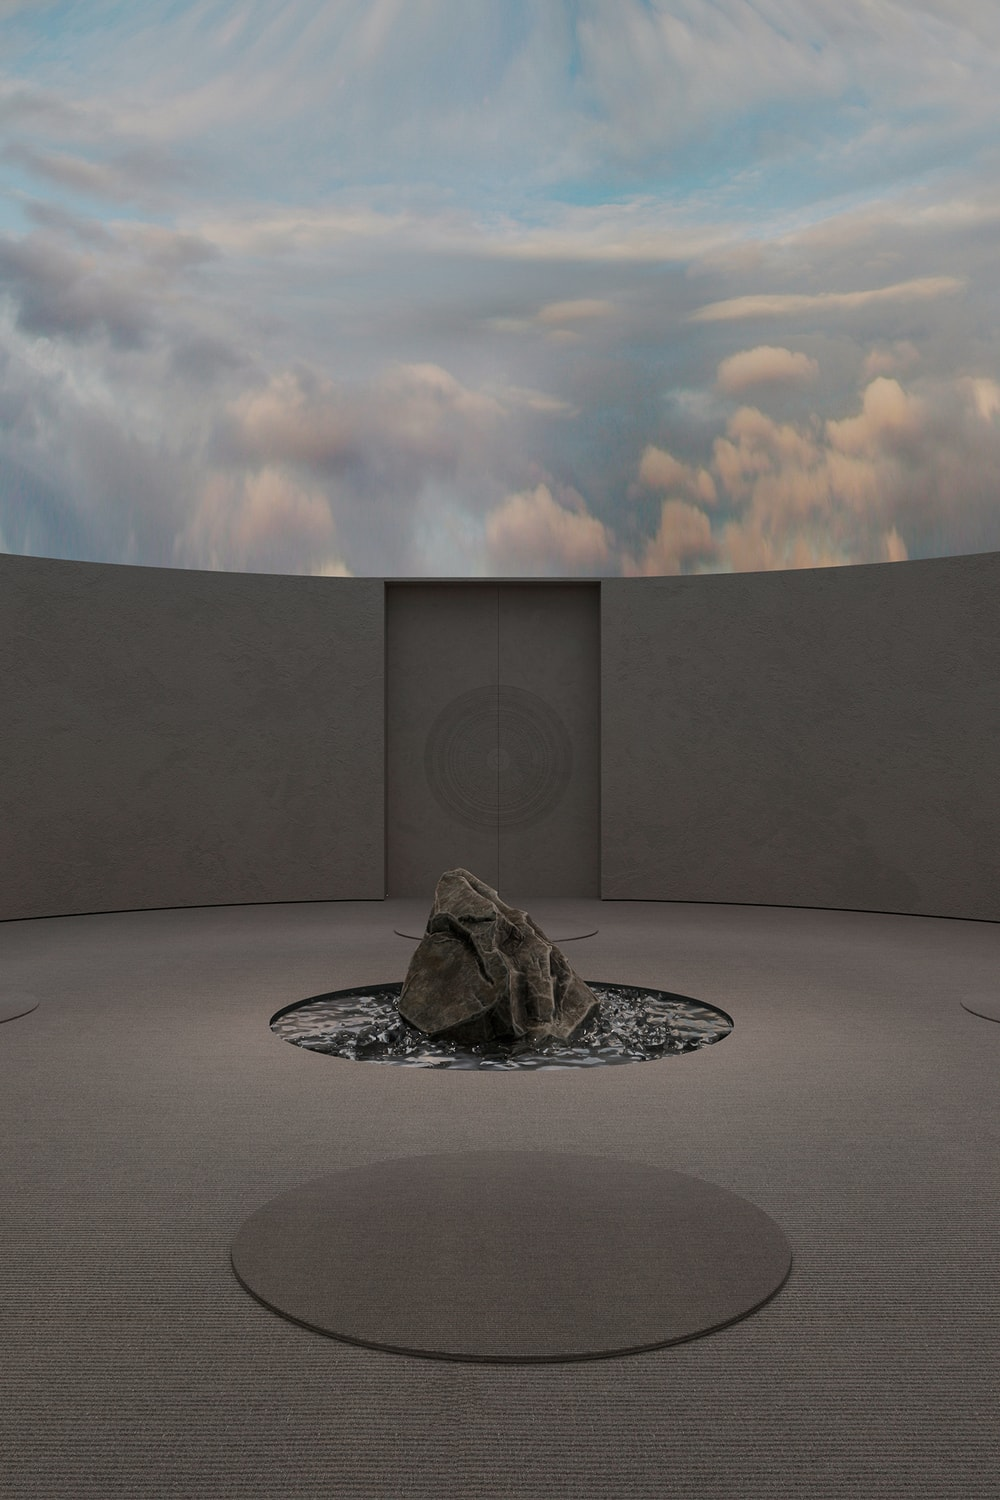 The ceiling of the meditation room could be changed into a cloudy sky scenery.